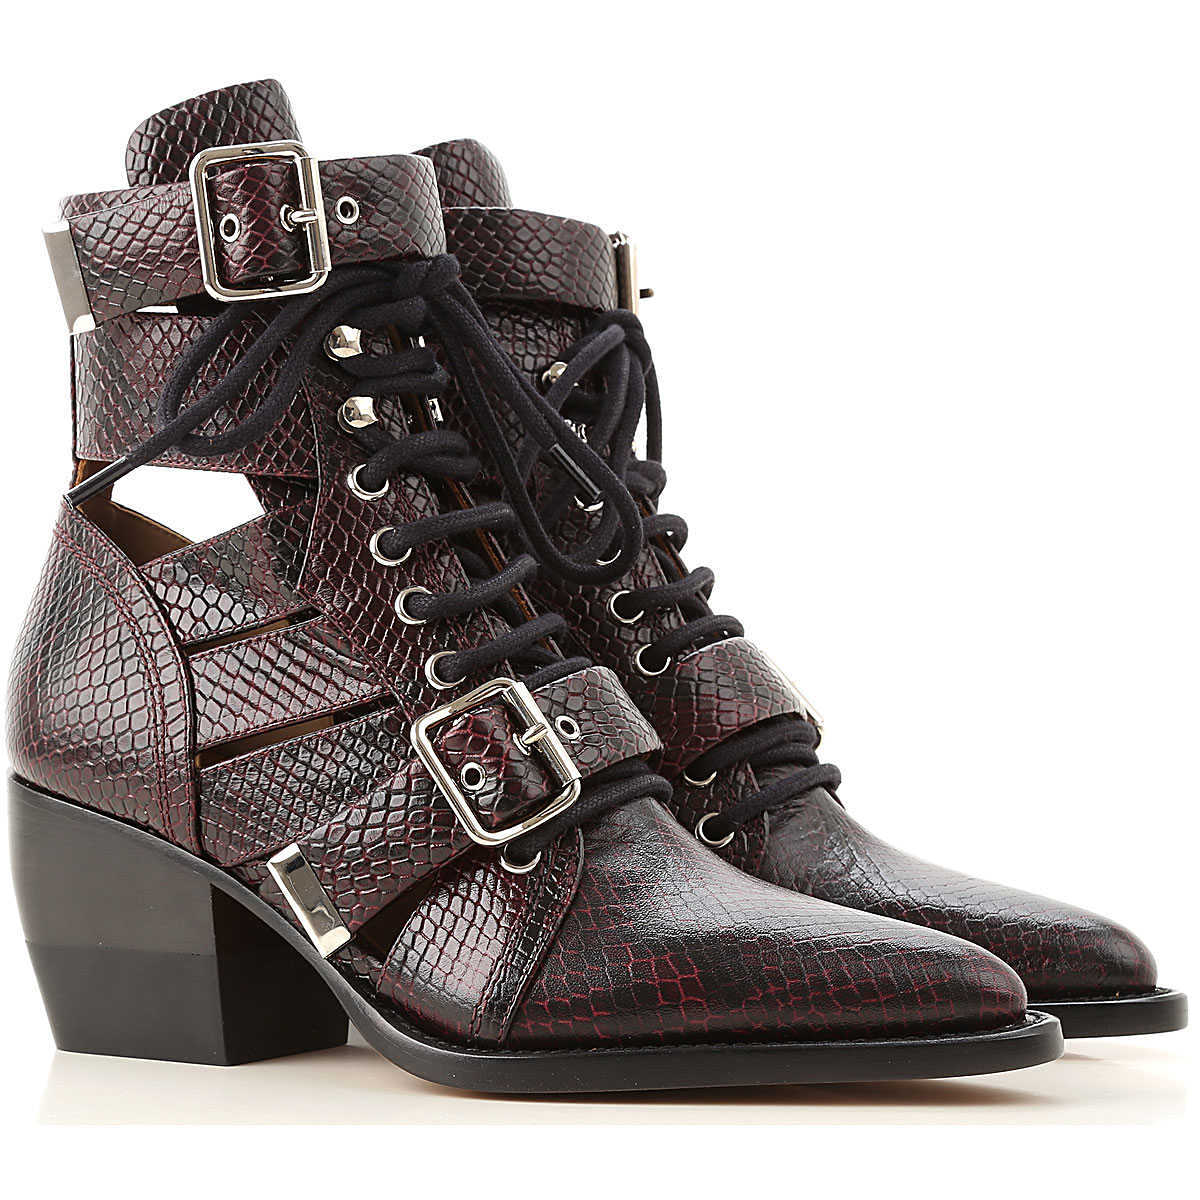 Chloe Boots for Women Booties On Sale in Outlet - GOOFASH